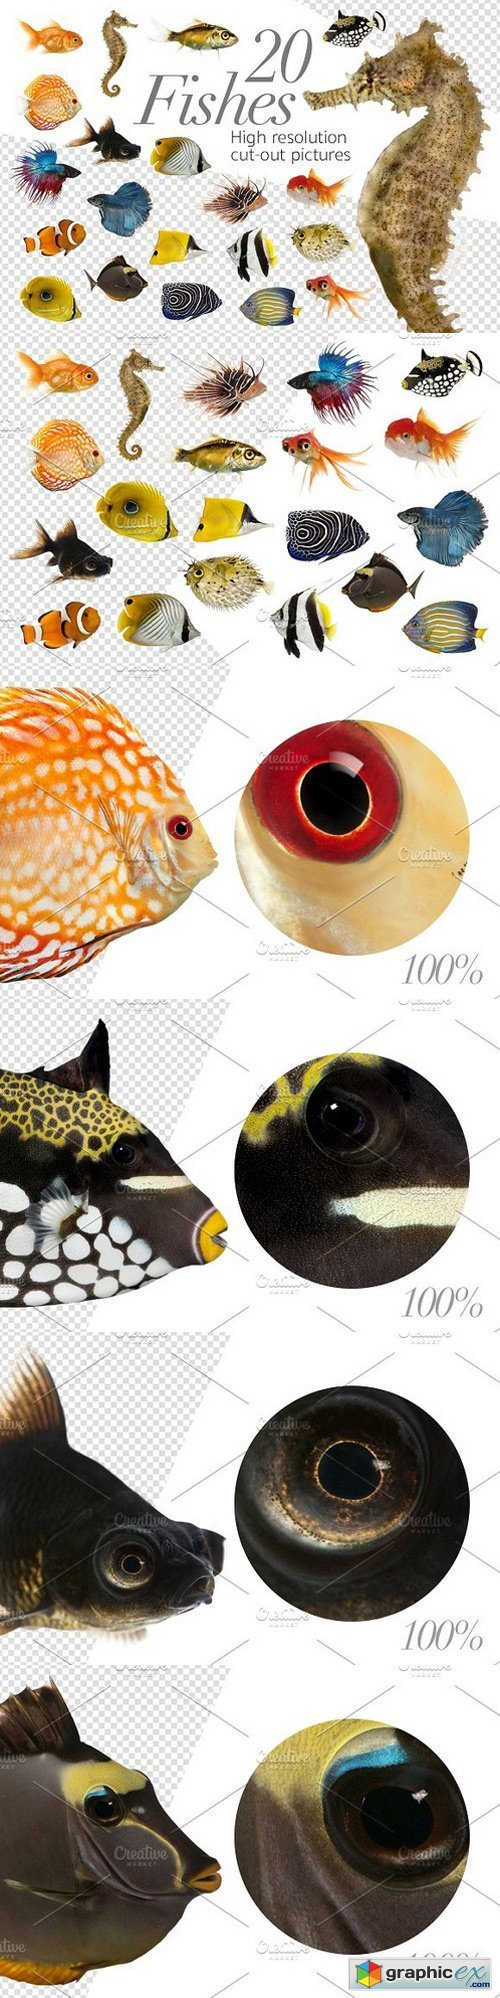 20 Fishes Cut-out High Res Pictures